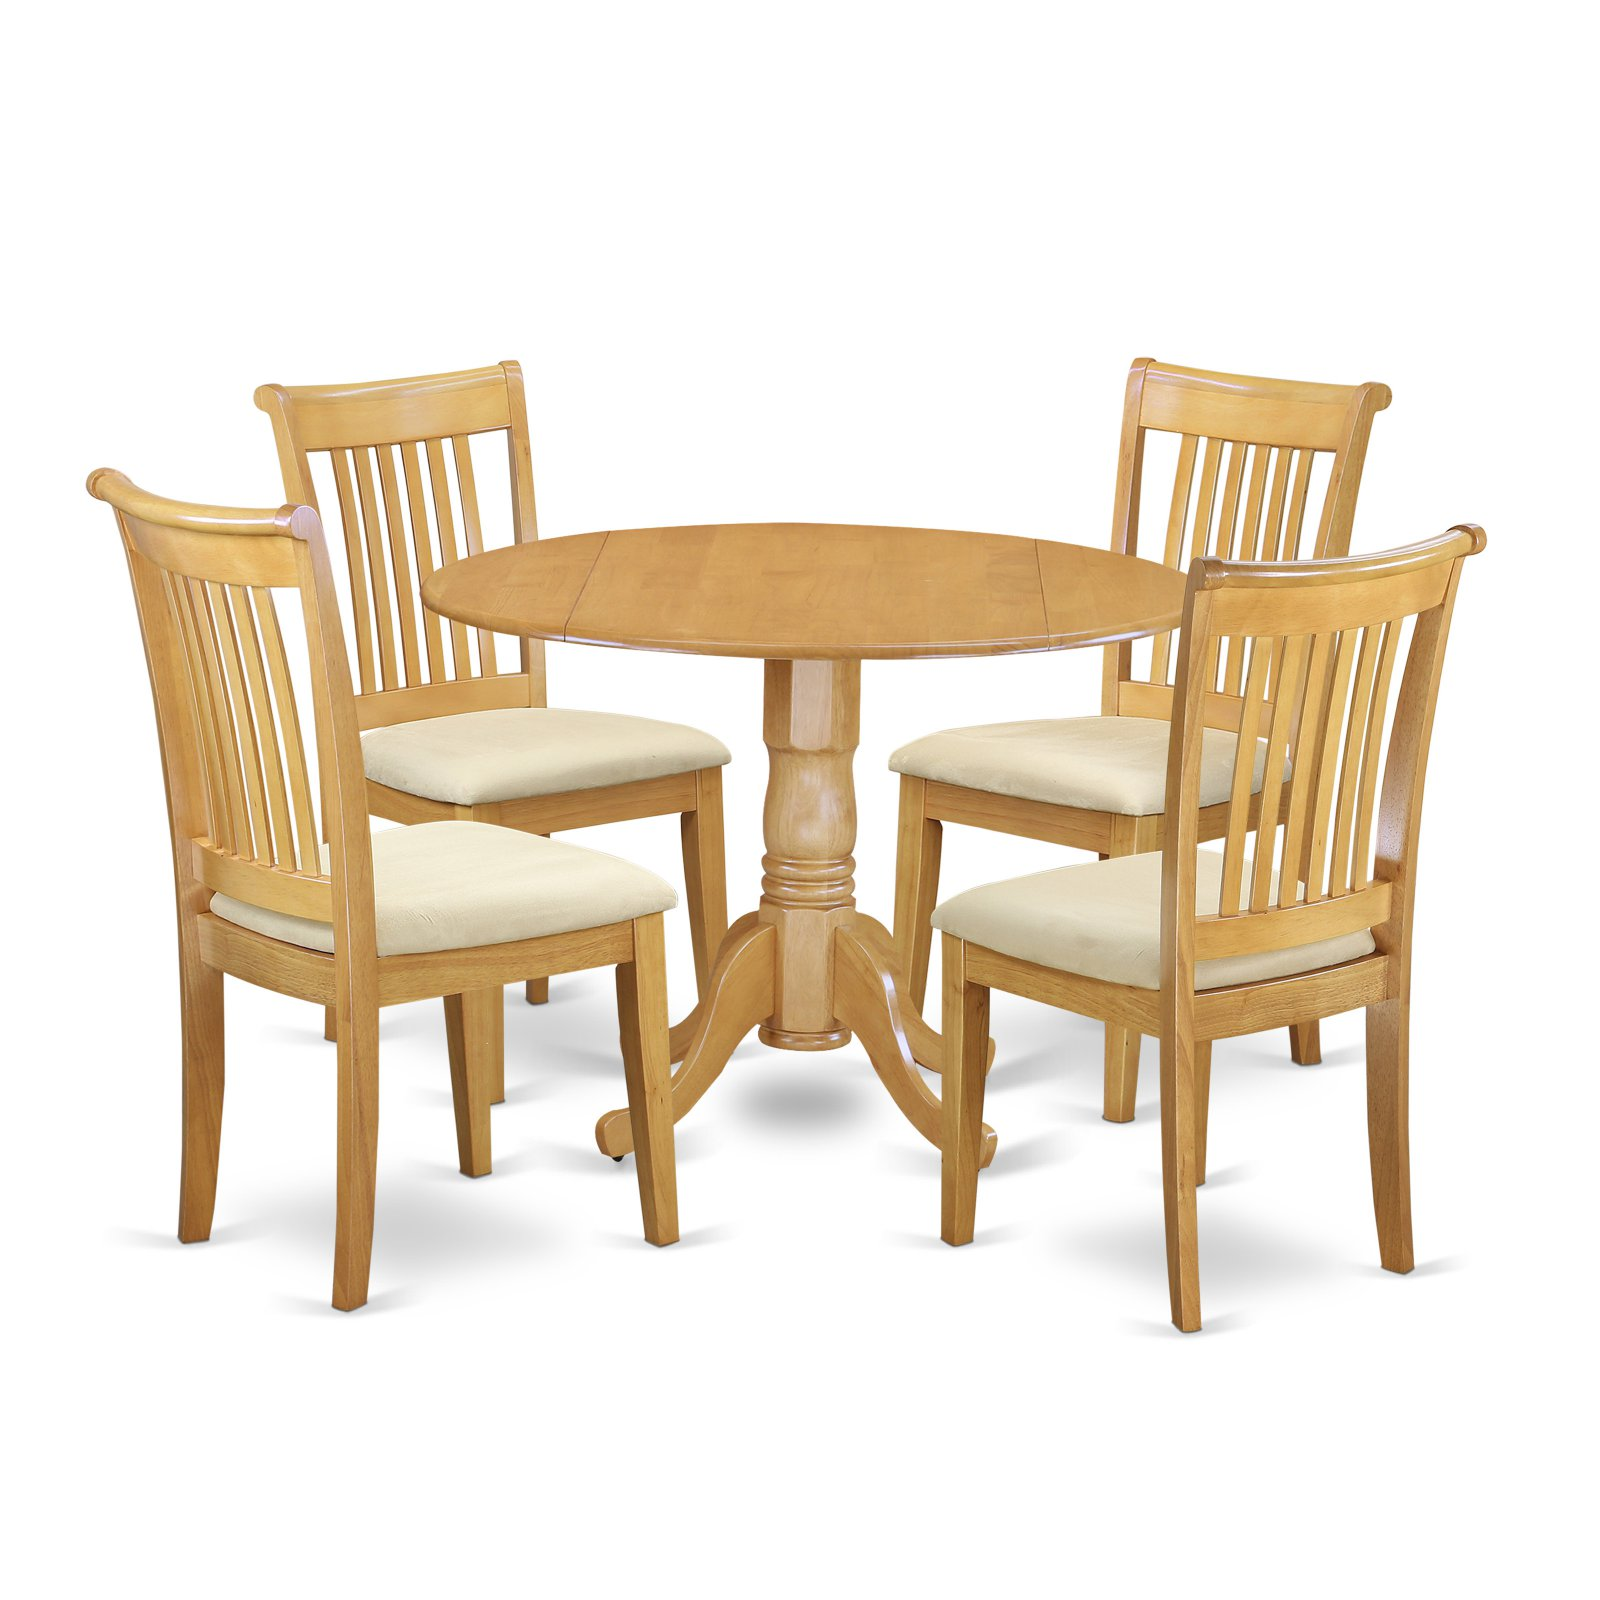 East West Furniture Dublin DLPO5-C Five Piece Drop Leaf Dining Set